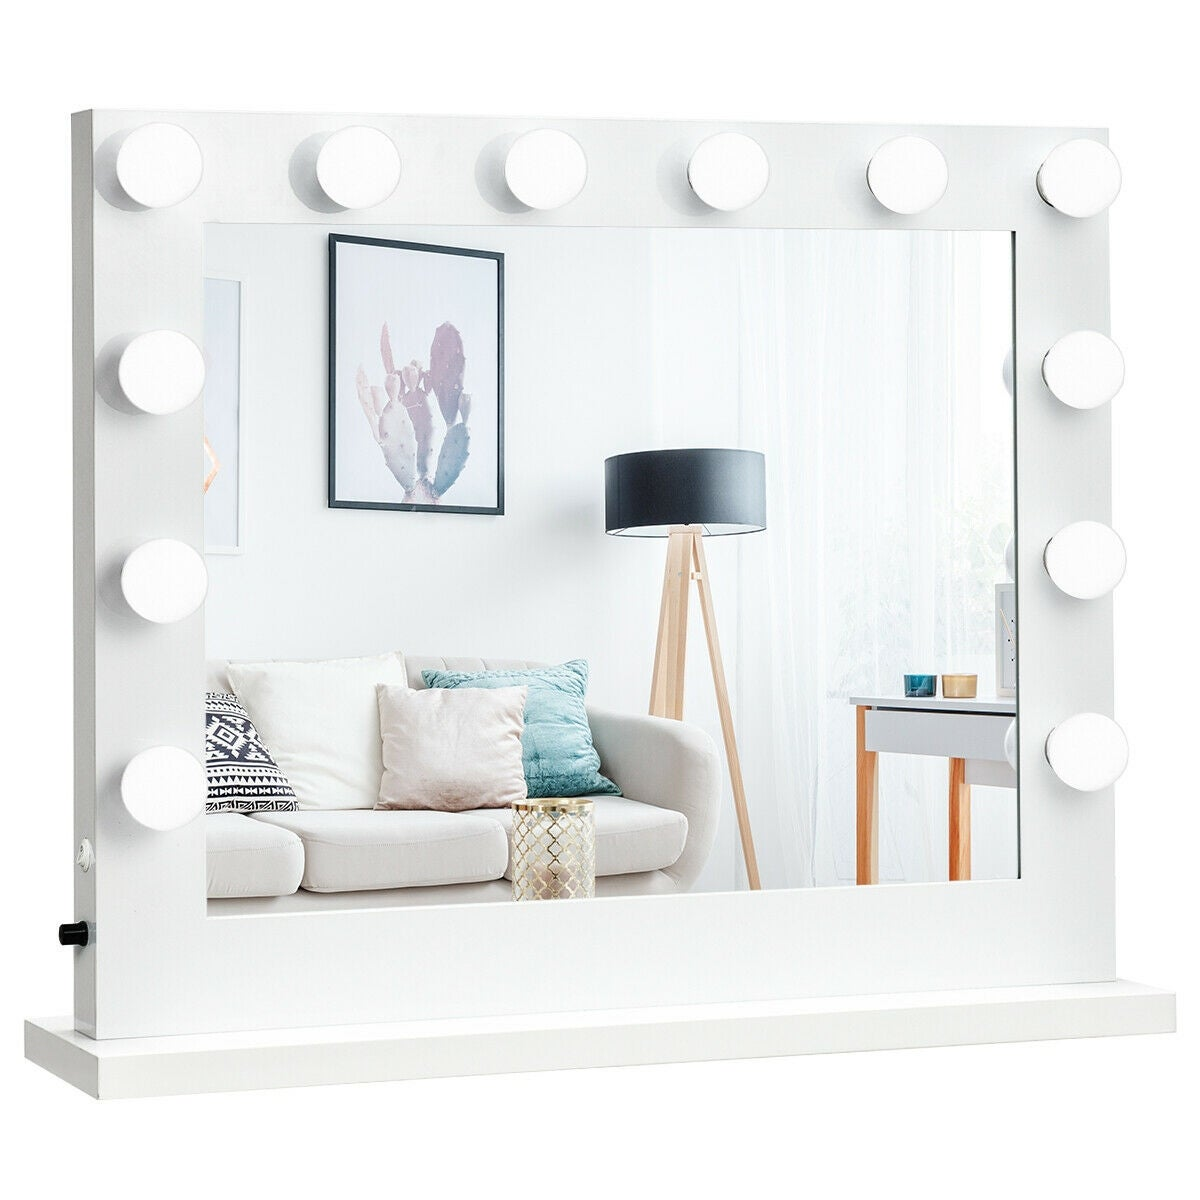 Shop Gymax Vanity Mirror Dimmer Light Hollywood Makeup Mirror Wall Mounted 14 Led Bulbs White Overstock 23130748